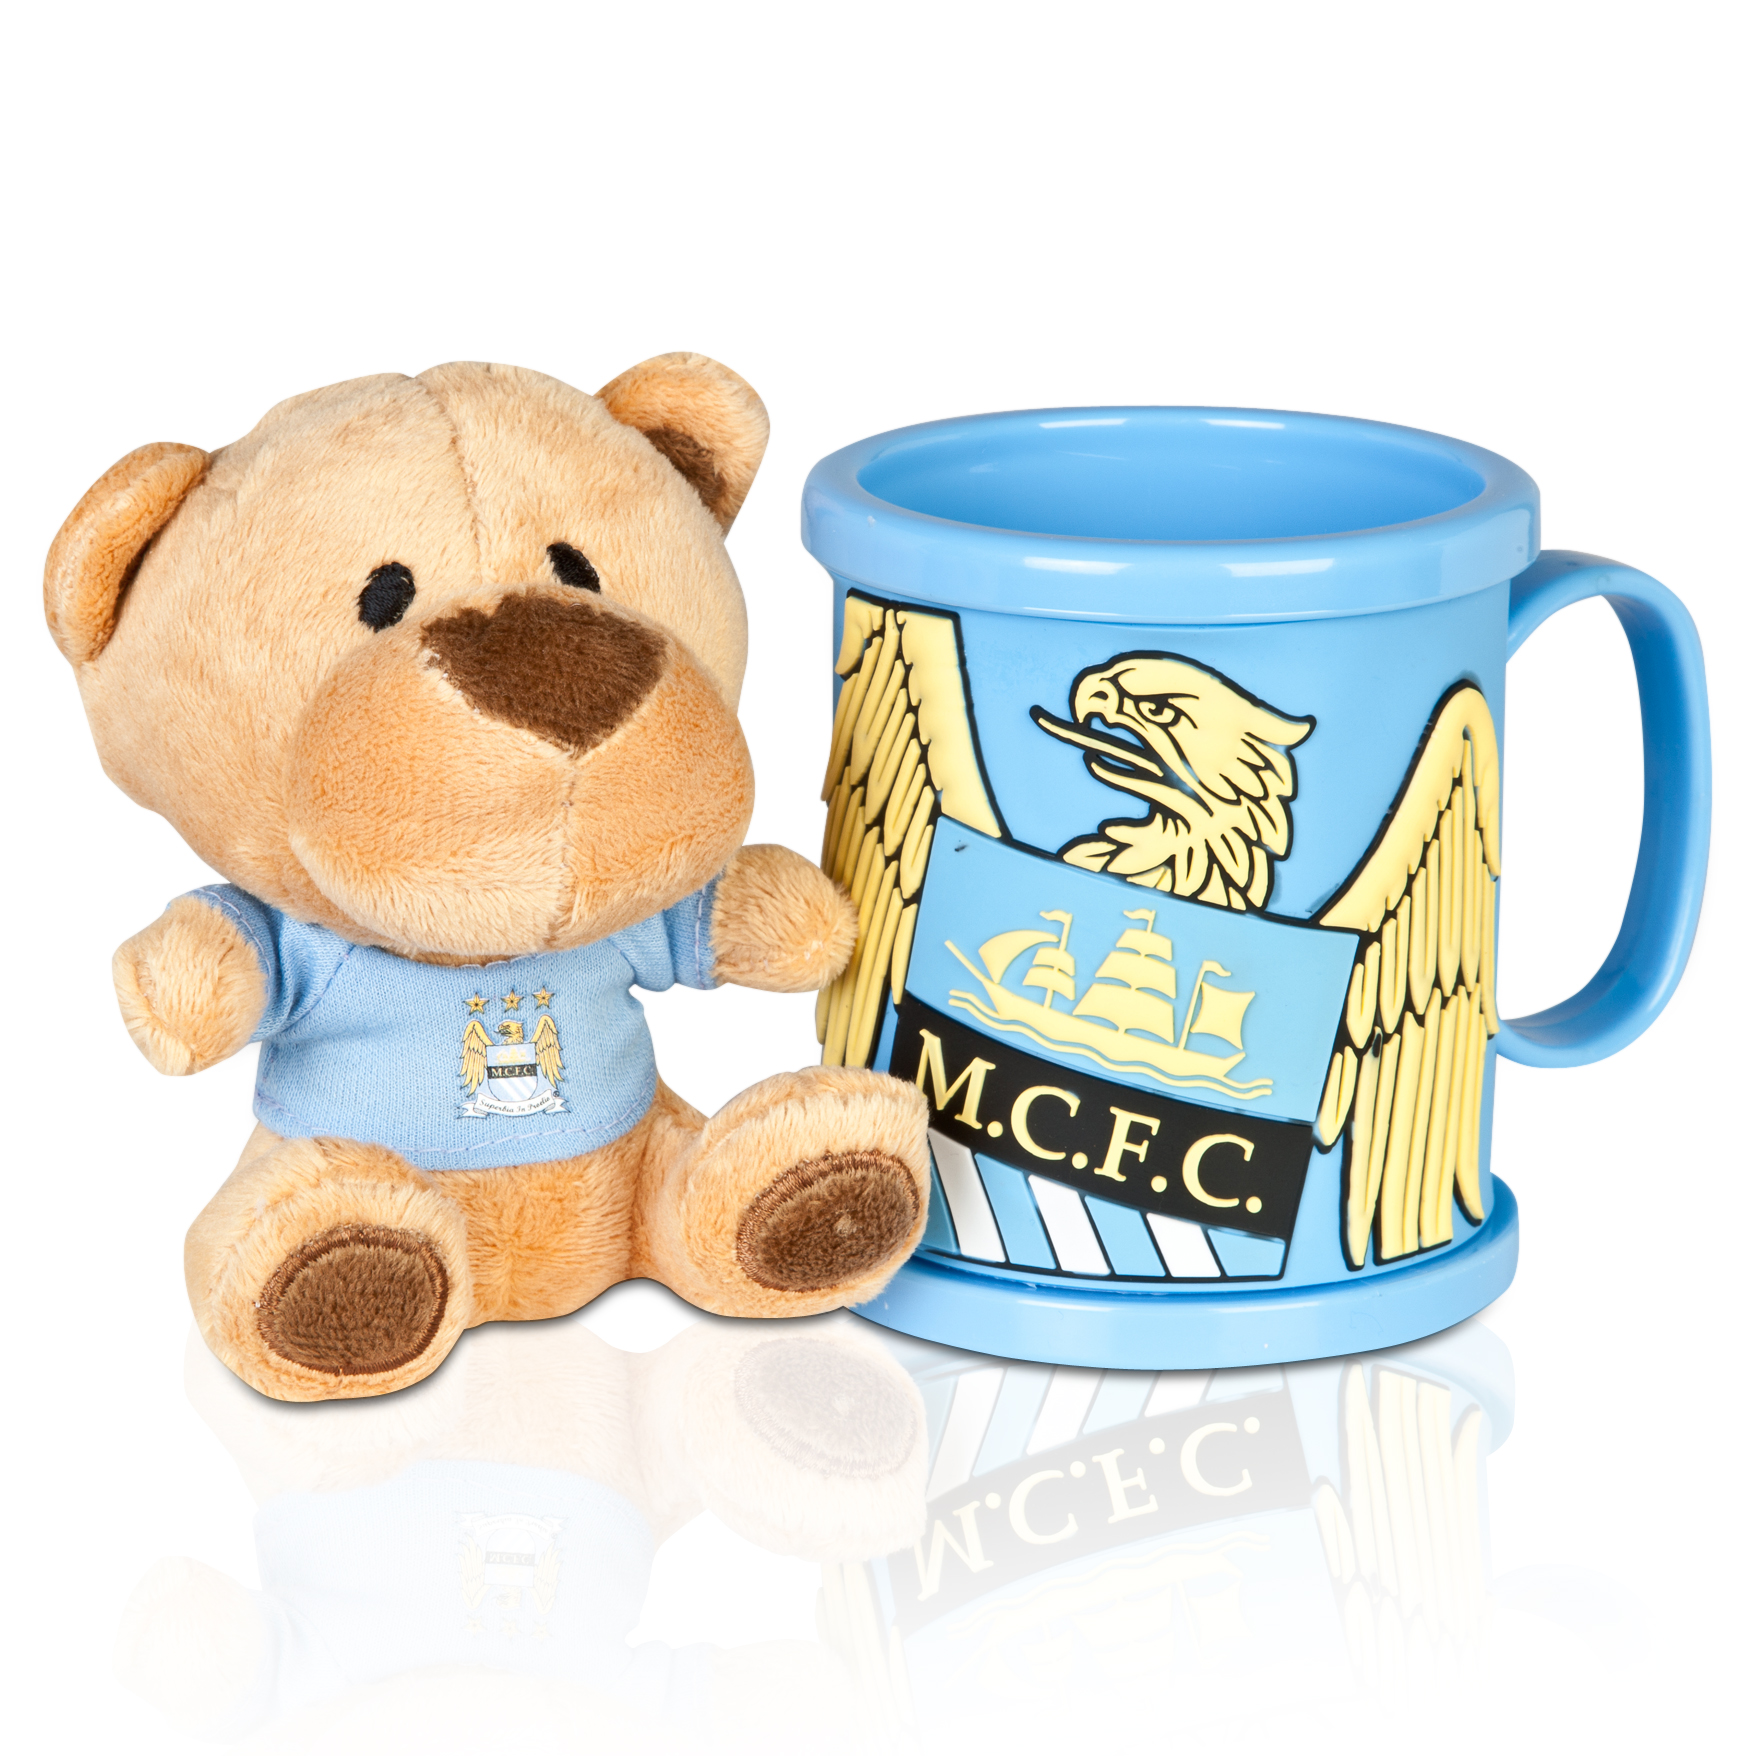 Manchester City Bear and Mug Set